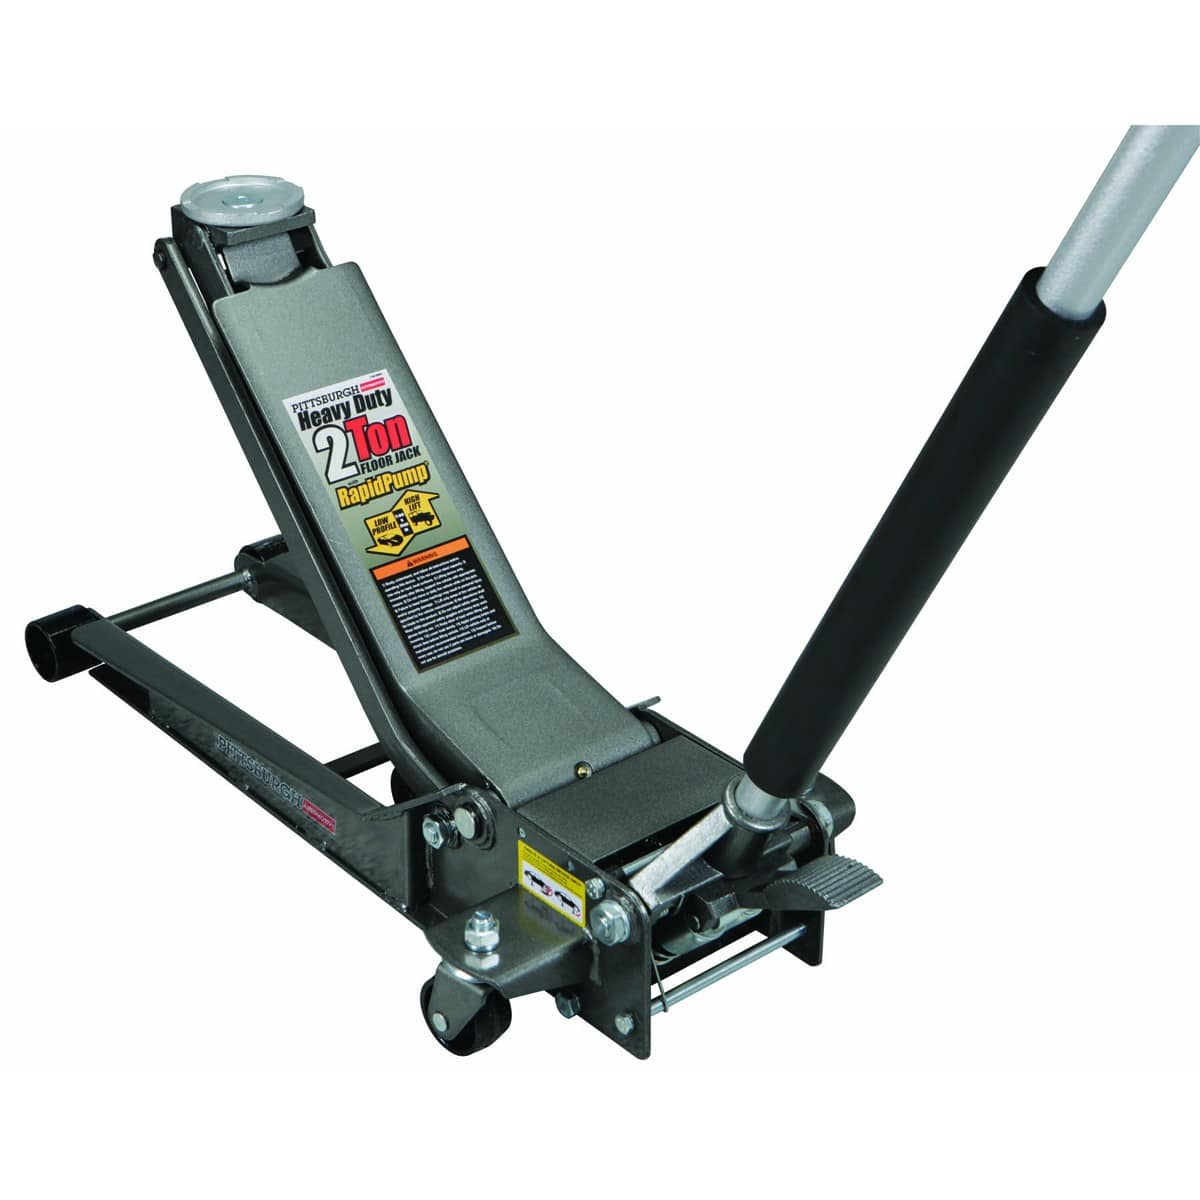 YMMV: Harbor Freight 2 Ton Low Profile Long Reach Steel Floor Jack $99.99 on clearance